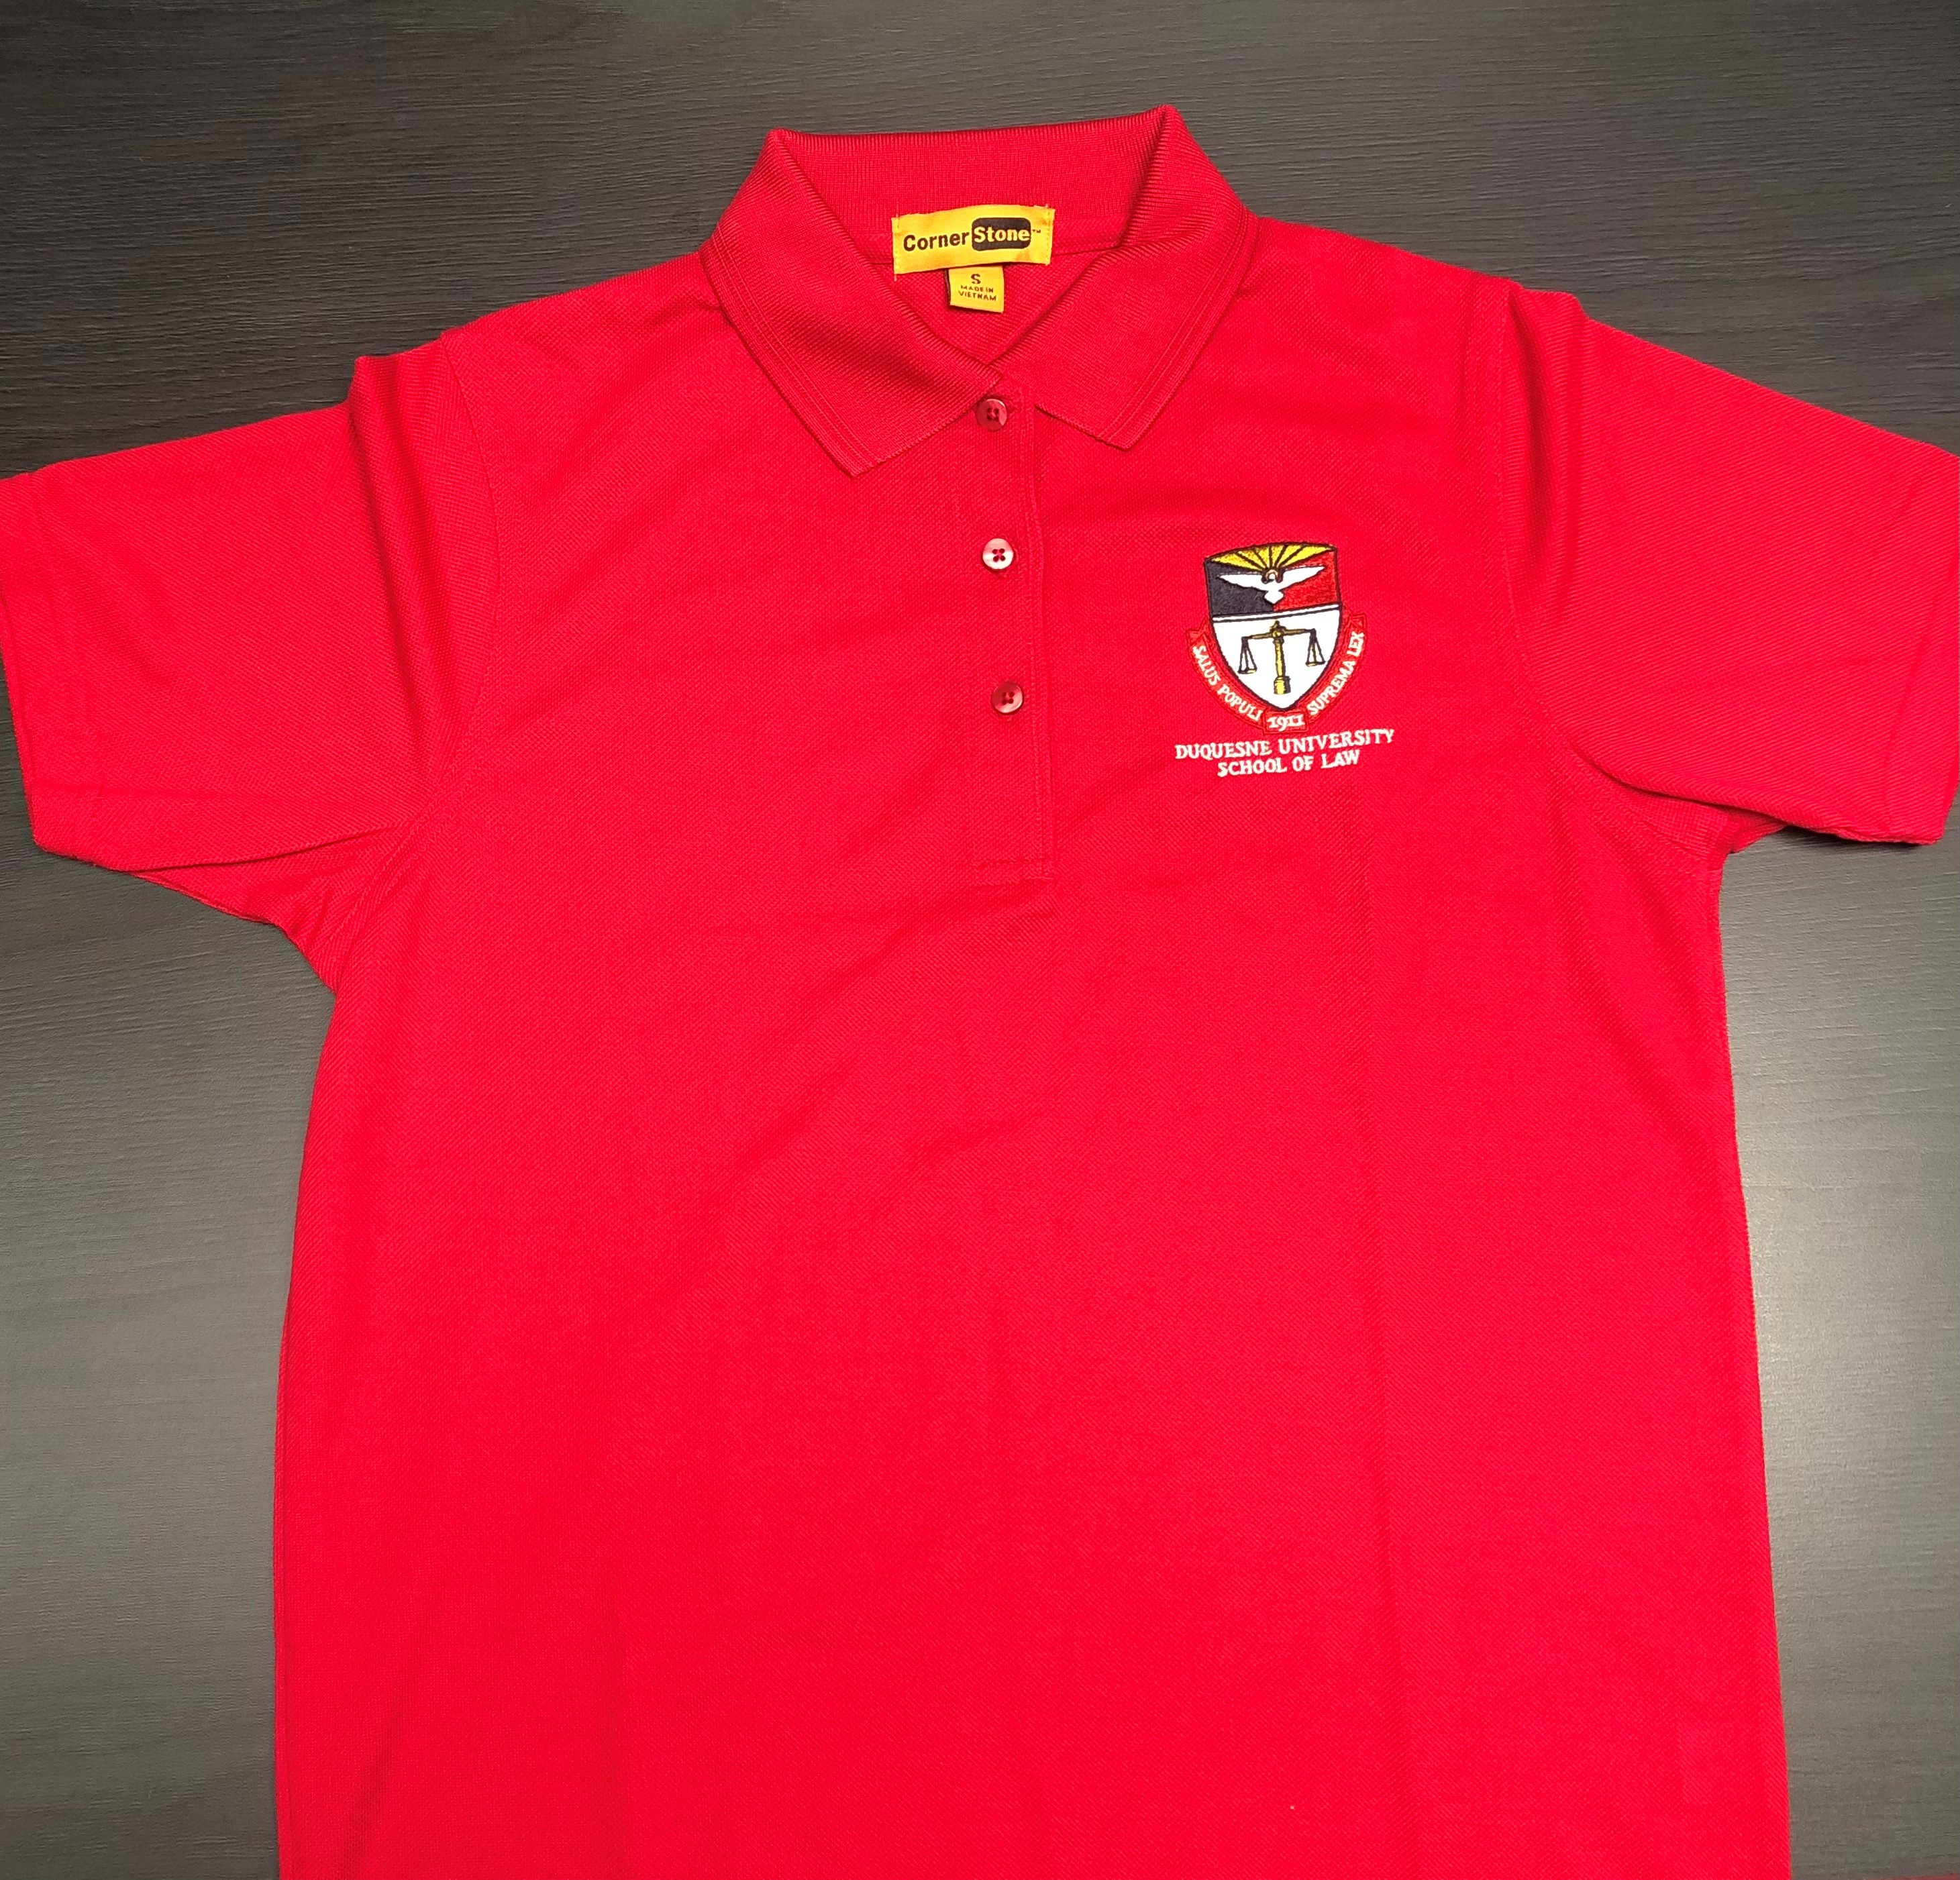 photo of the red polo shirt